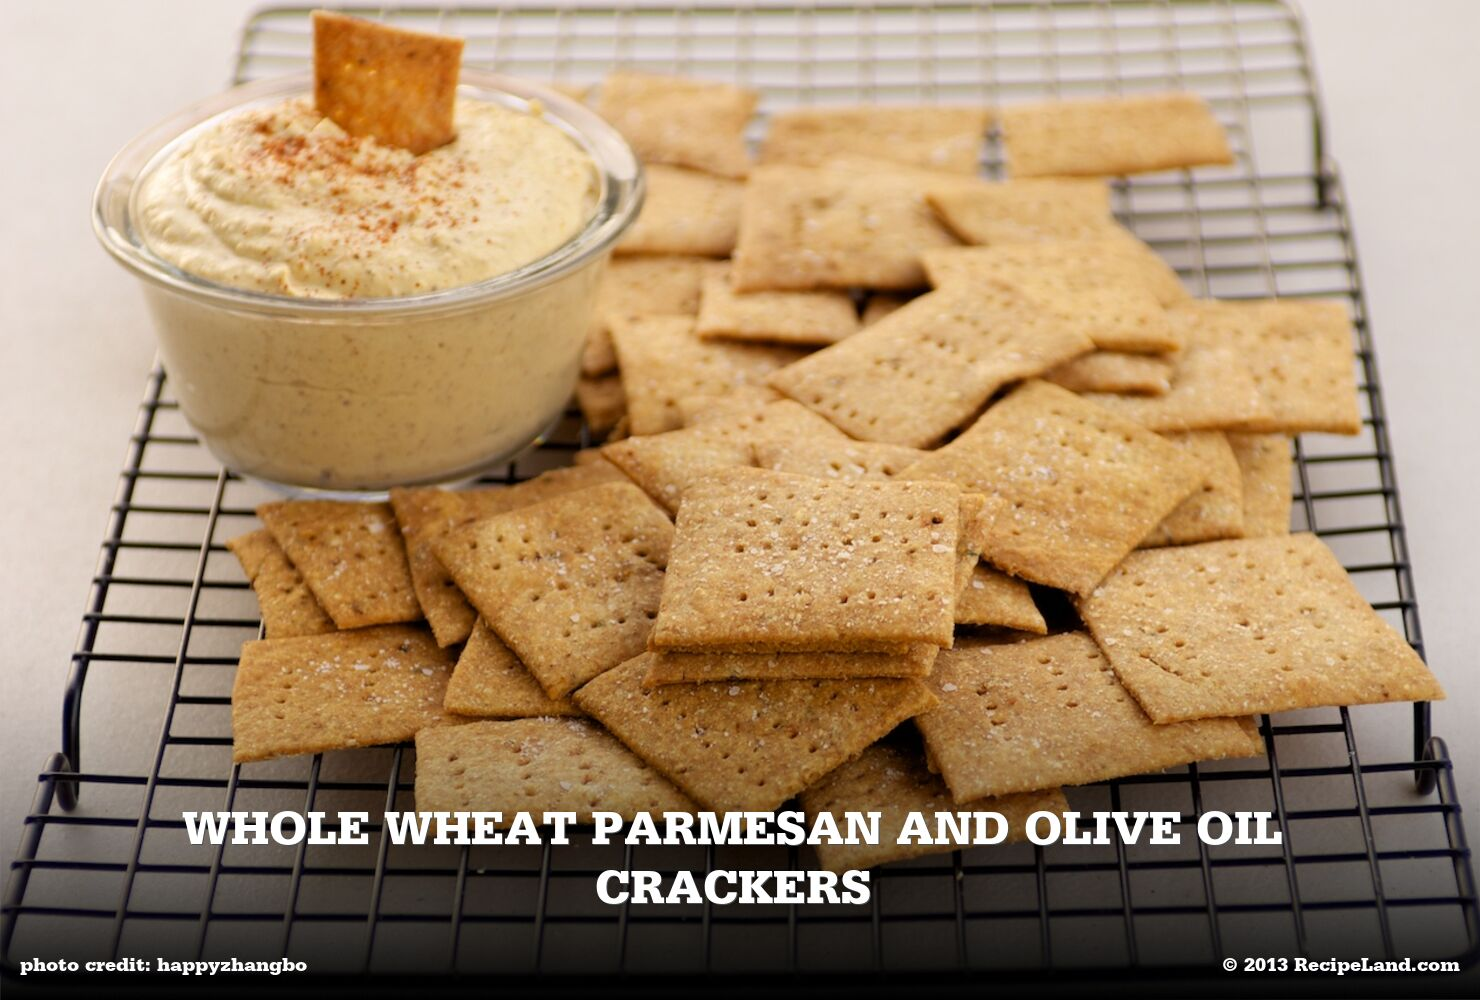 Whole Wheat Parmesan and Olive Oil Crackers